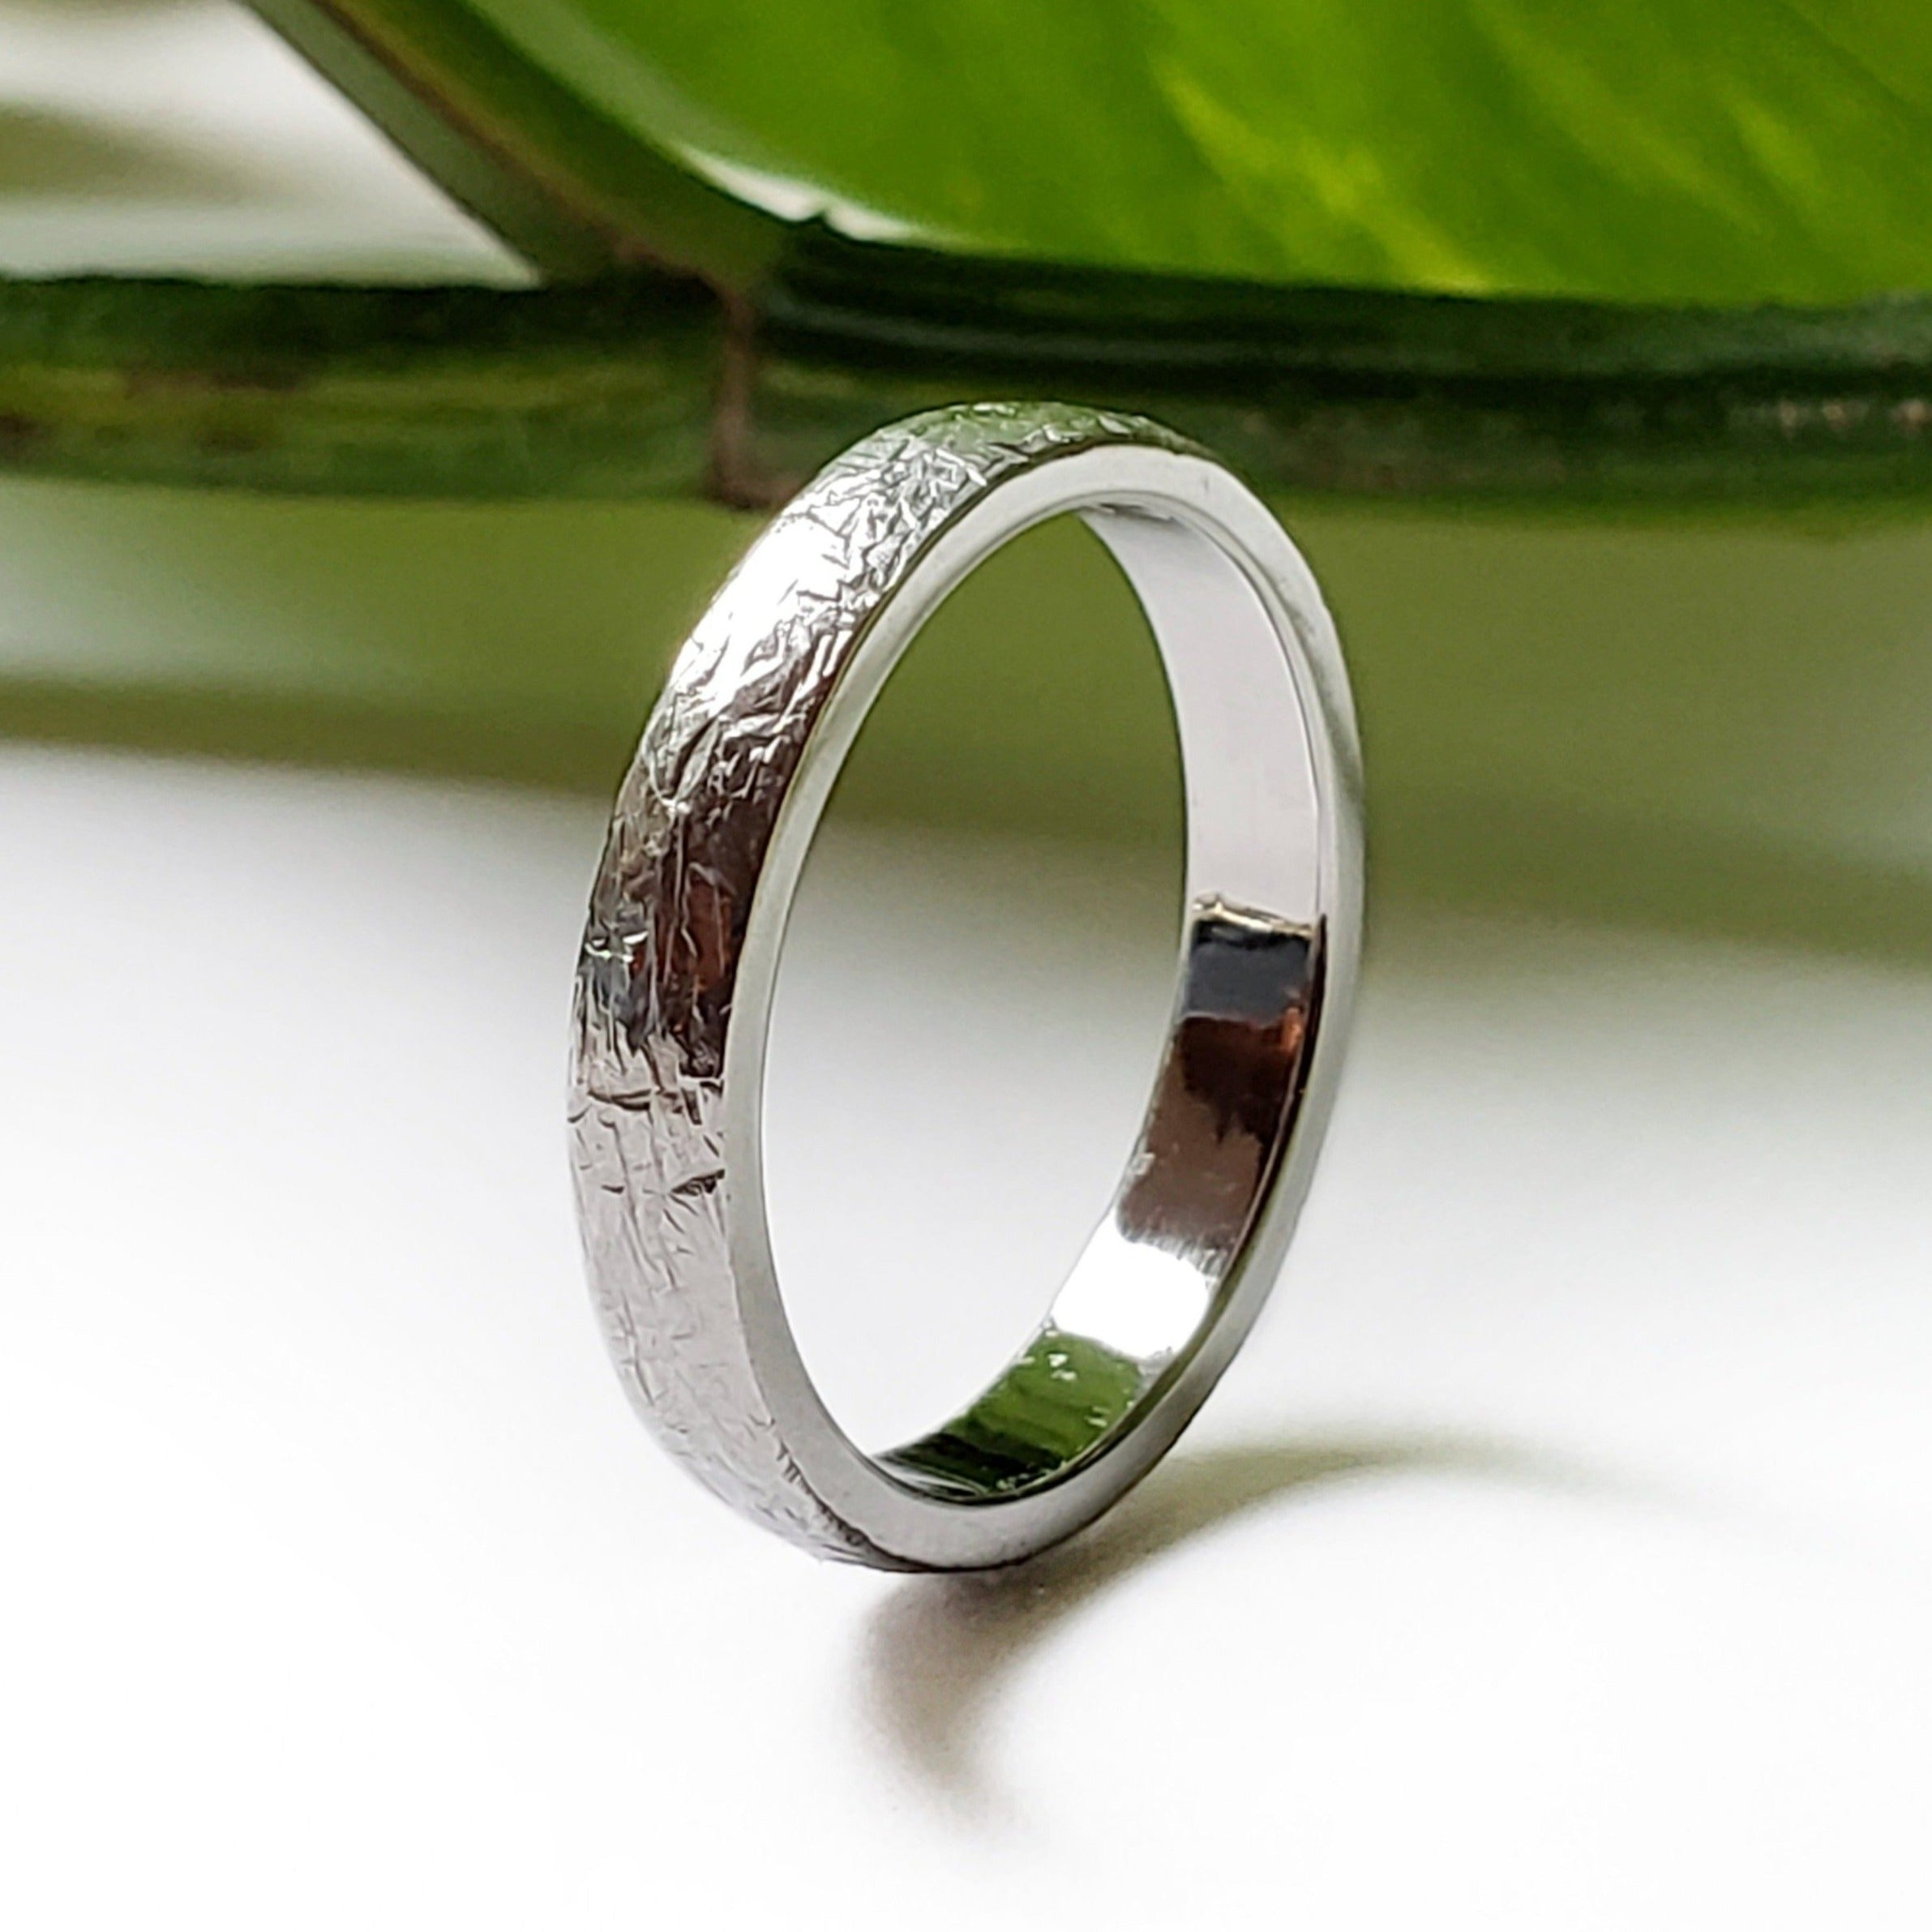 14kt white gold elephant skin texture straight wedding band era design